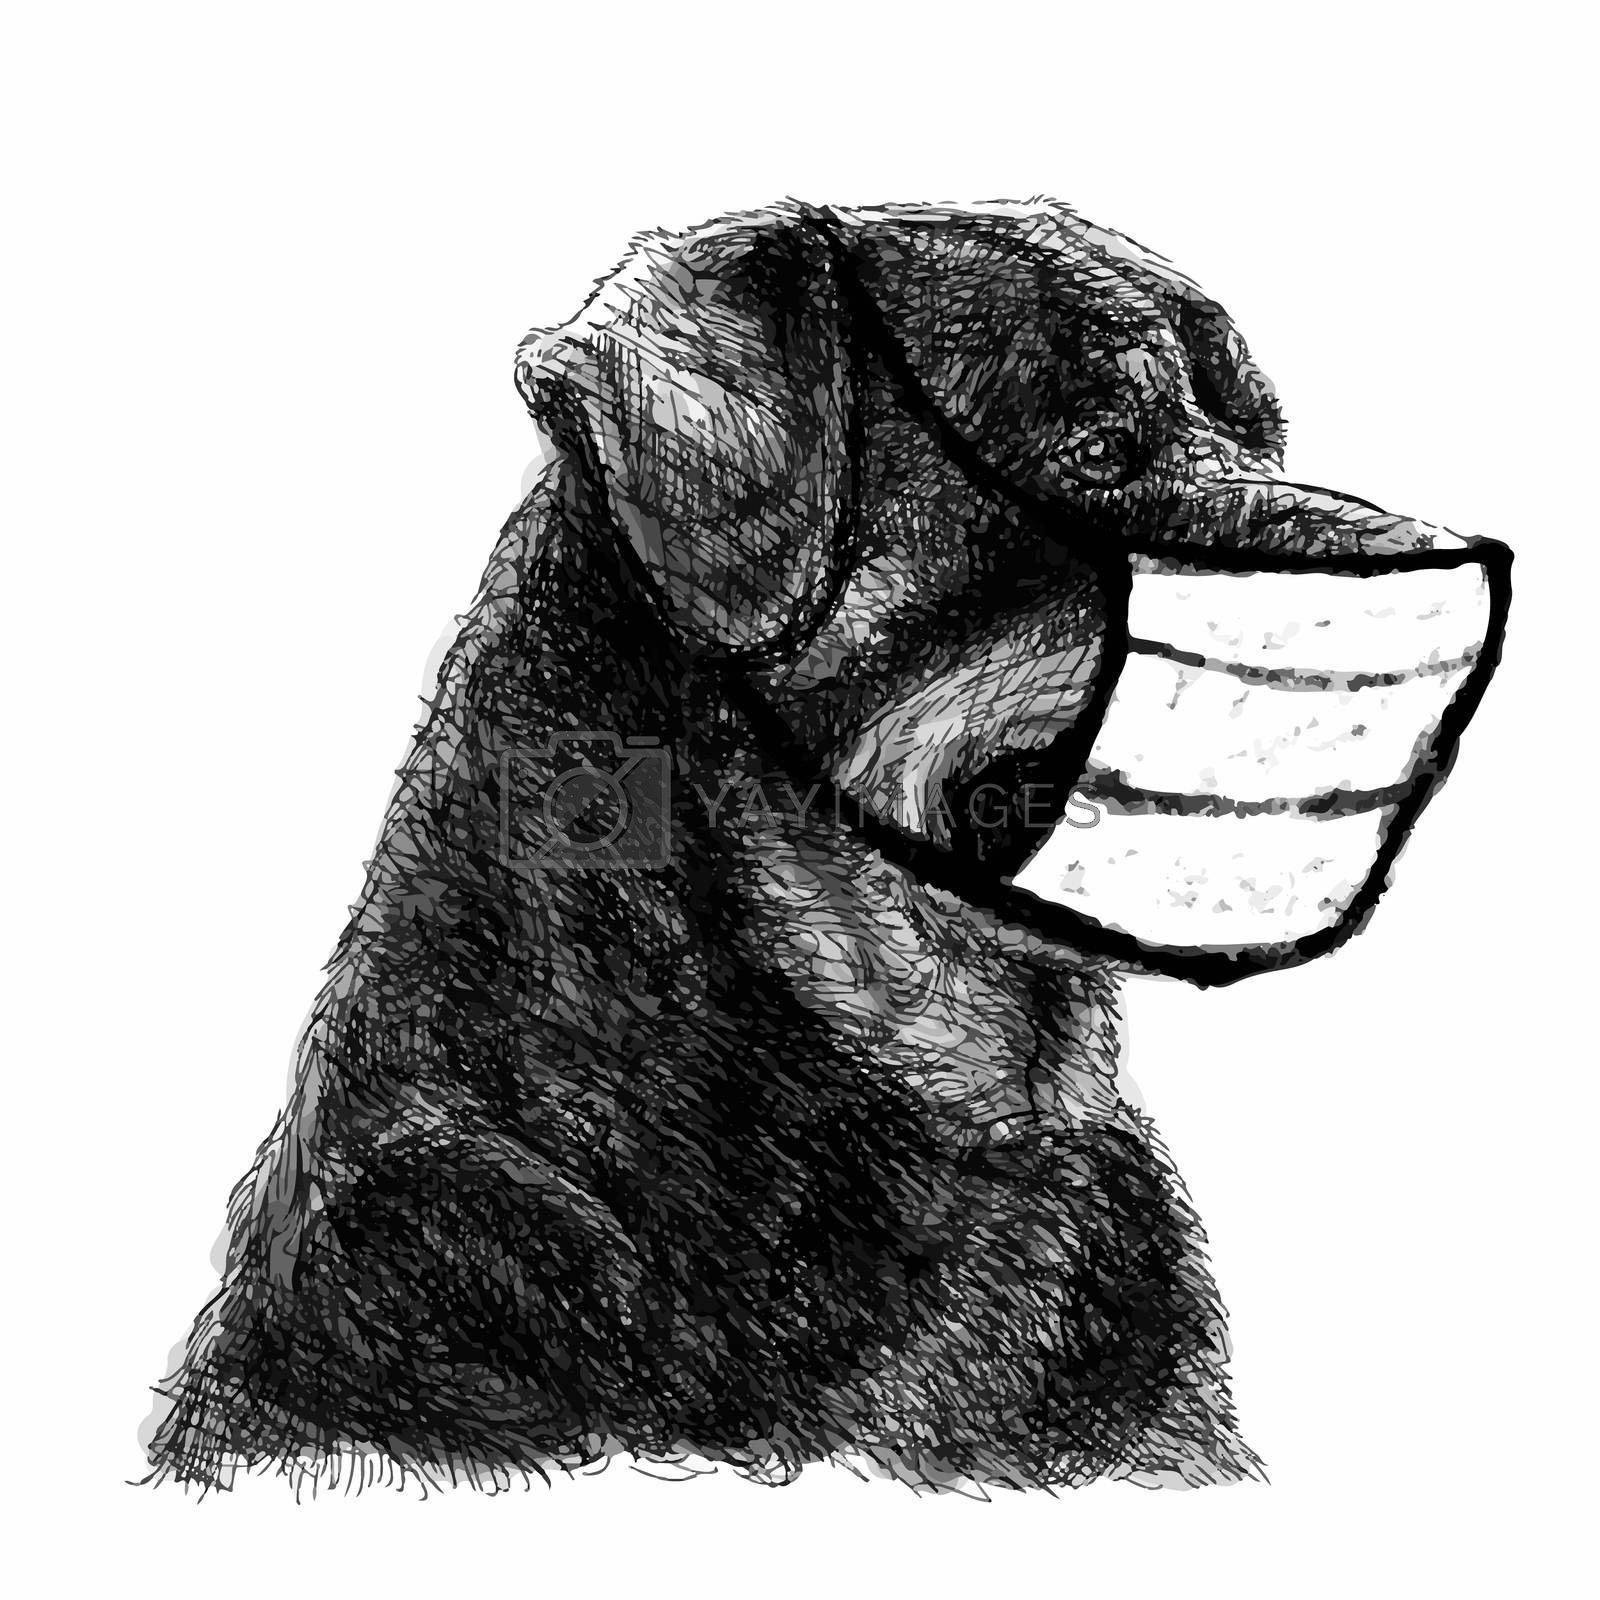 freehand sketch illustration of Rottweiler dog with mask doodle hand drawn